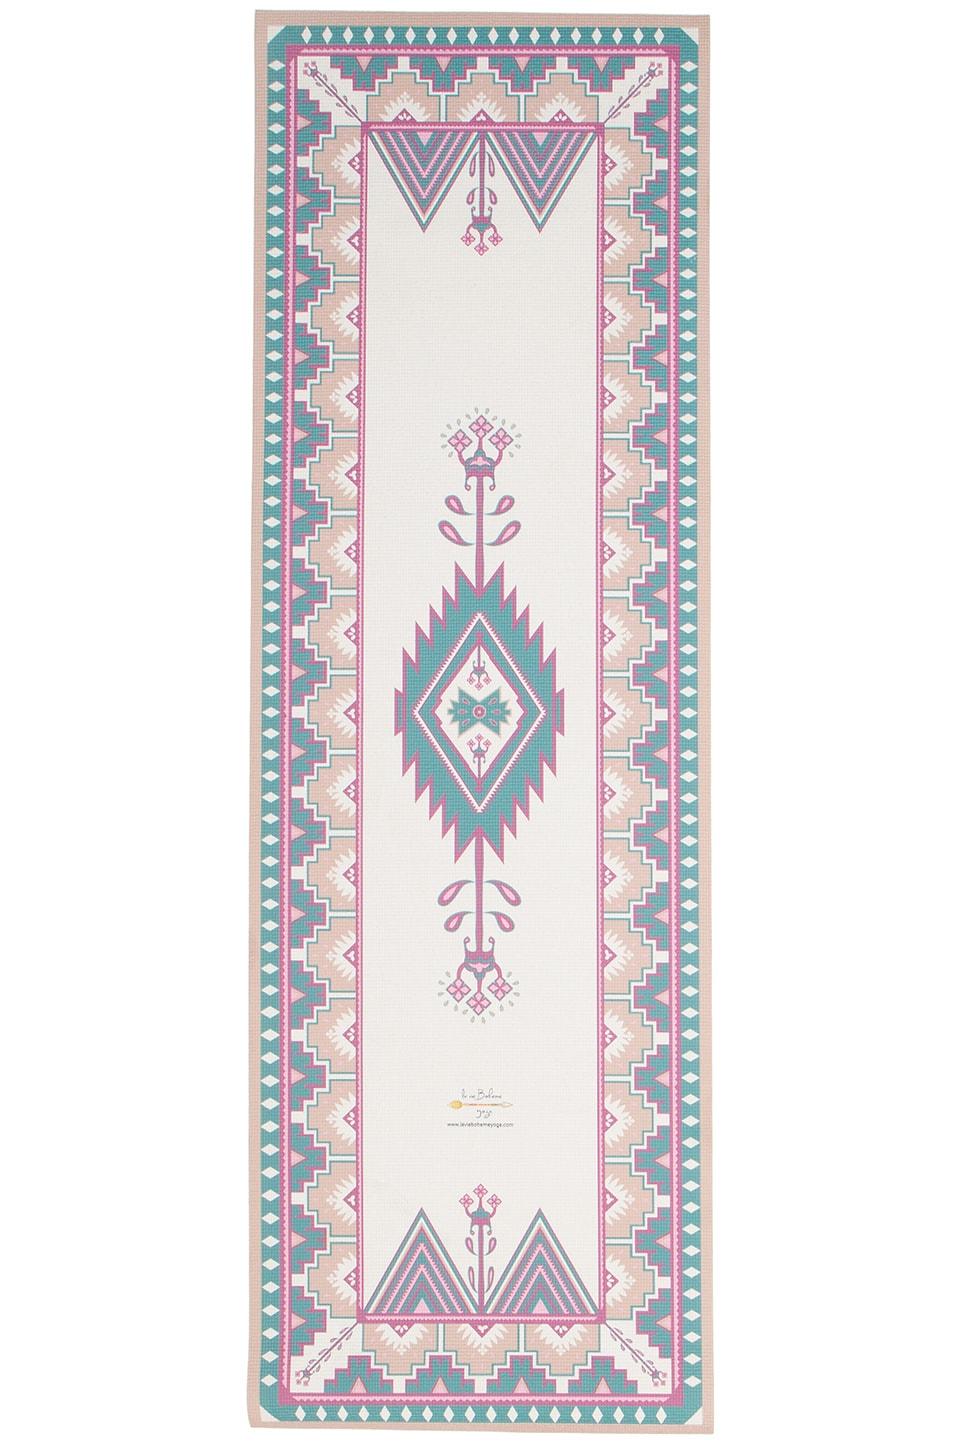 La Vie Boheme Yoga Marrakesh Yoga Mat